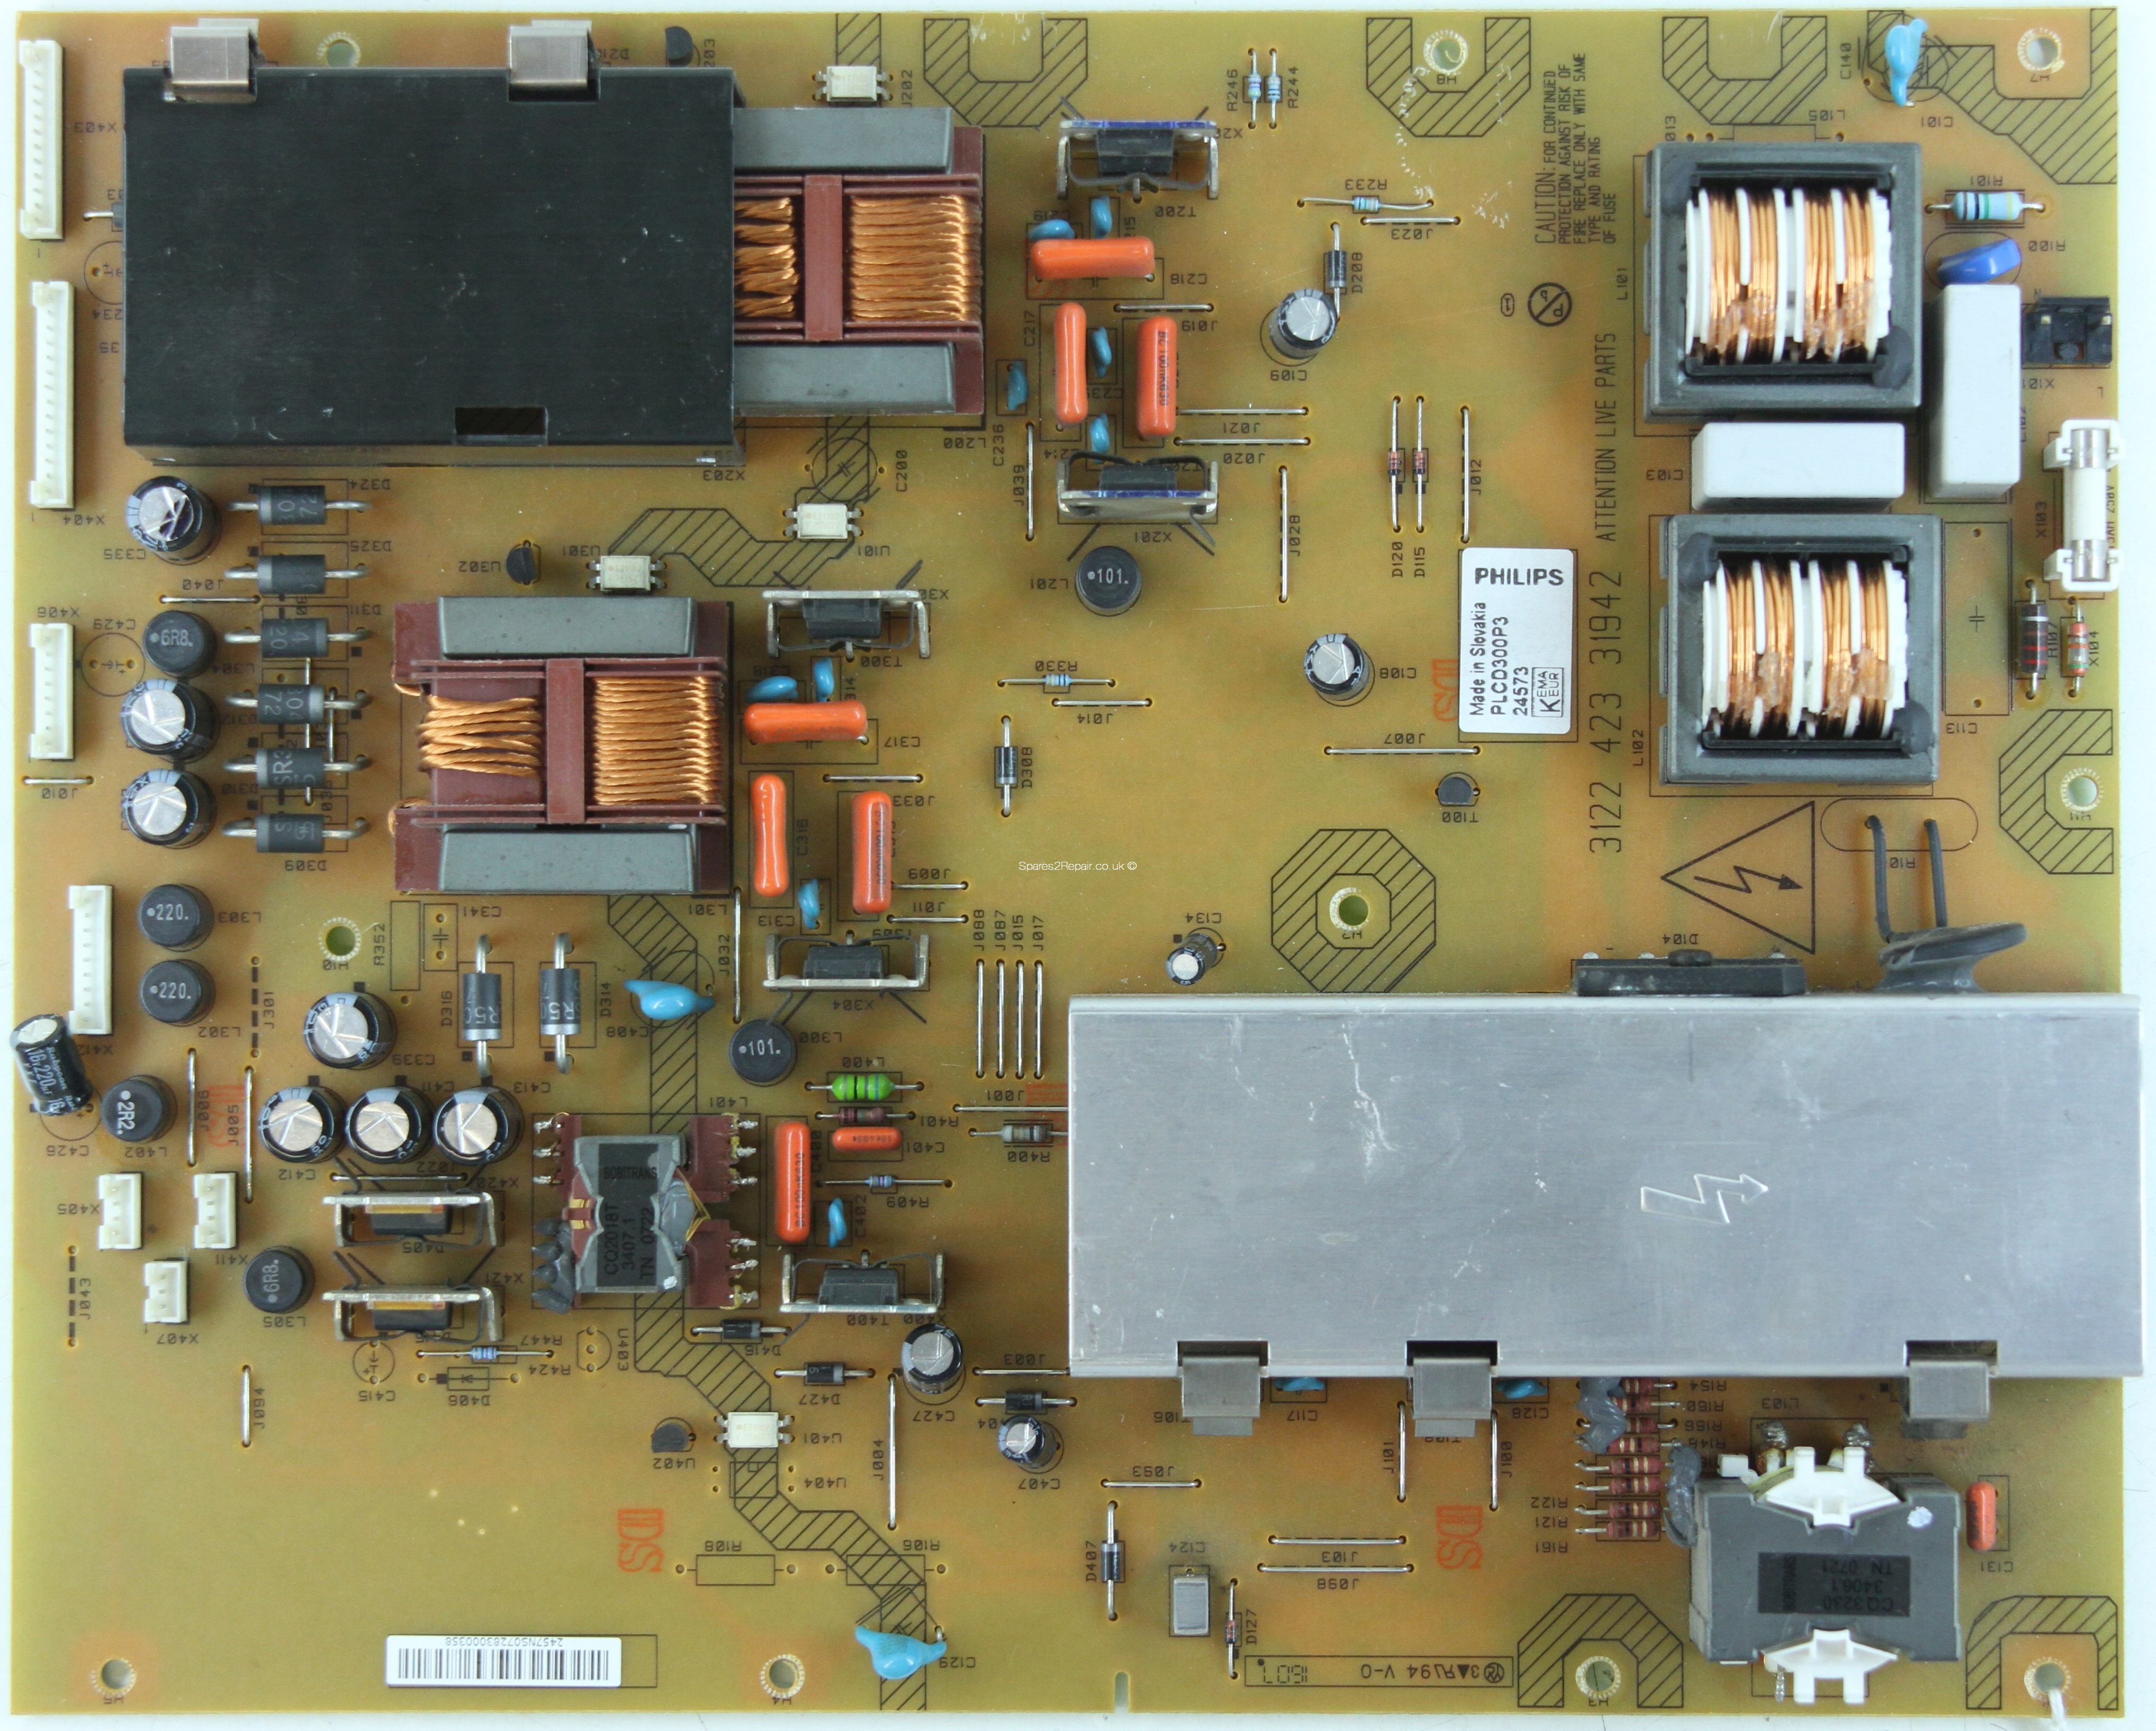 Philips 42PFL5522D/05 - PSU - 3122 423 31942 - PLCD300P3 - 24572